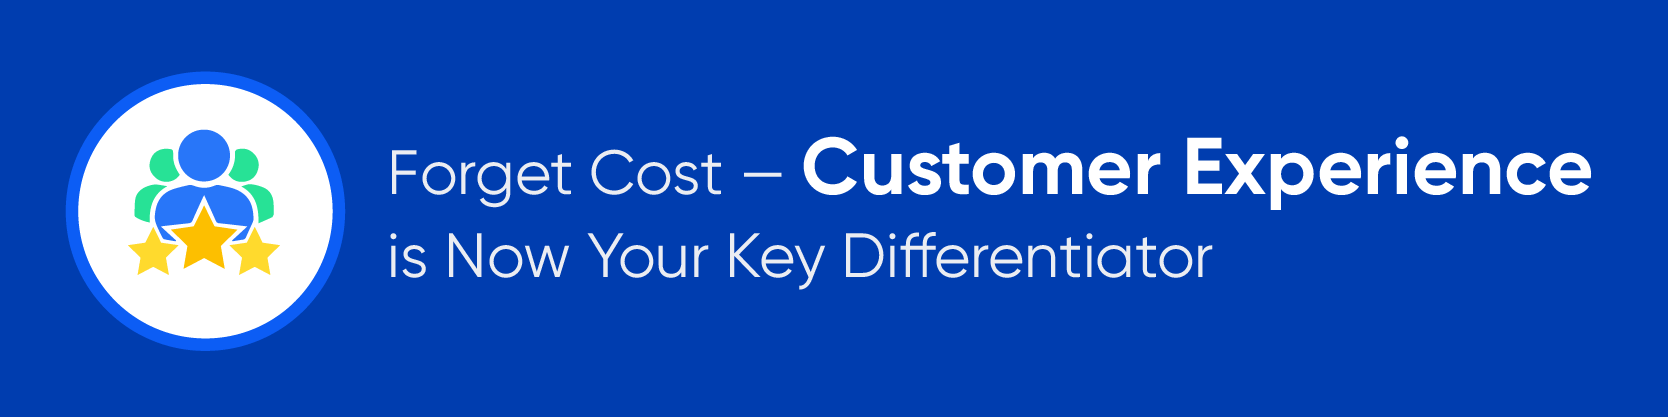 Forget Cost — Customer Experience is Now Your Key Differentiator